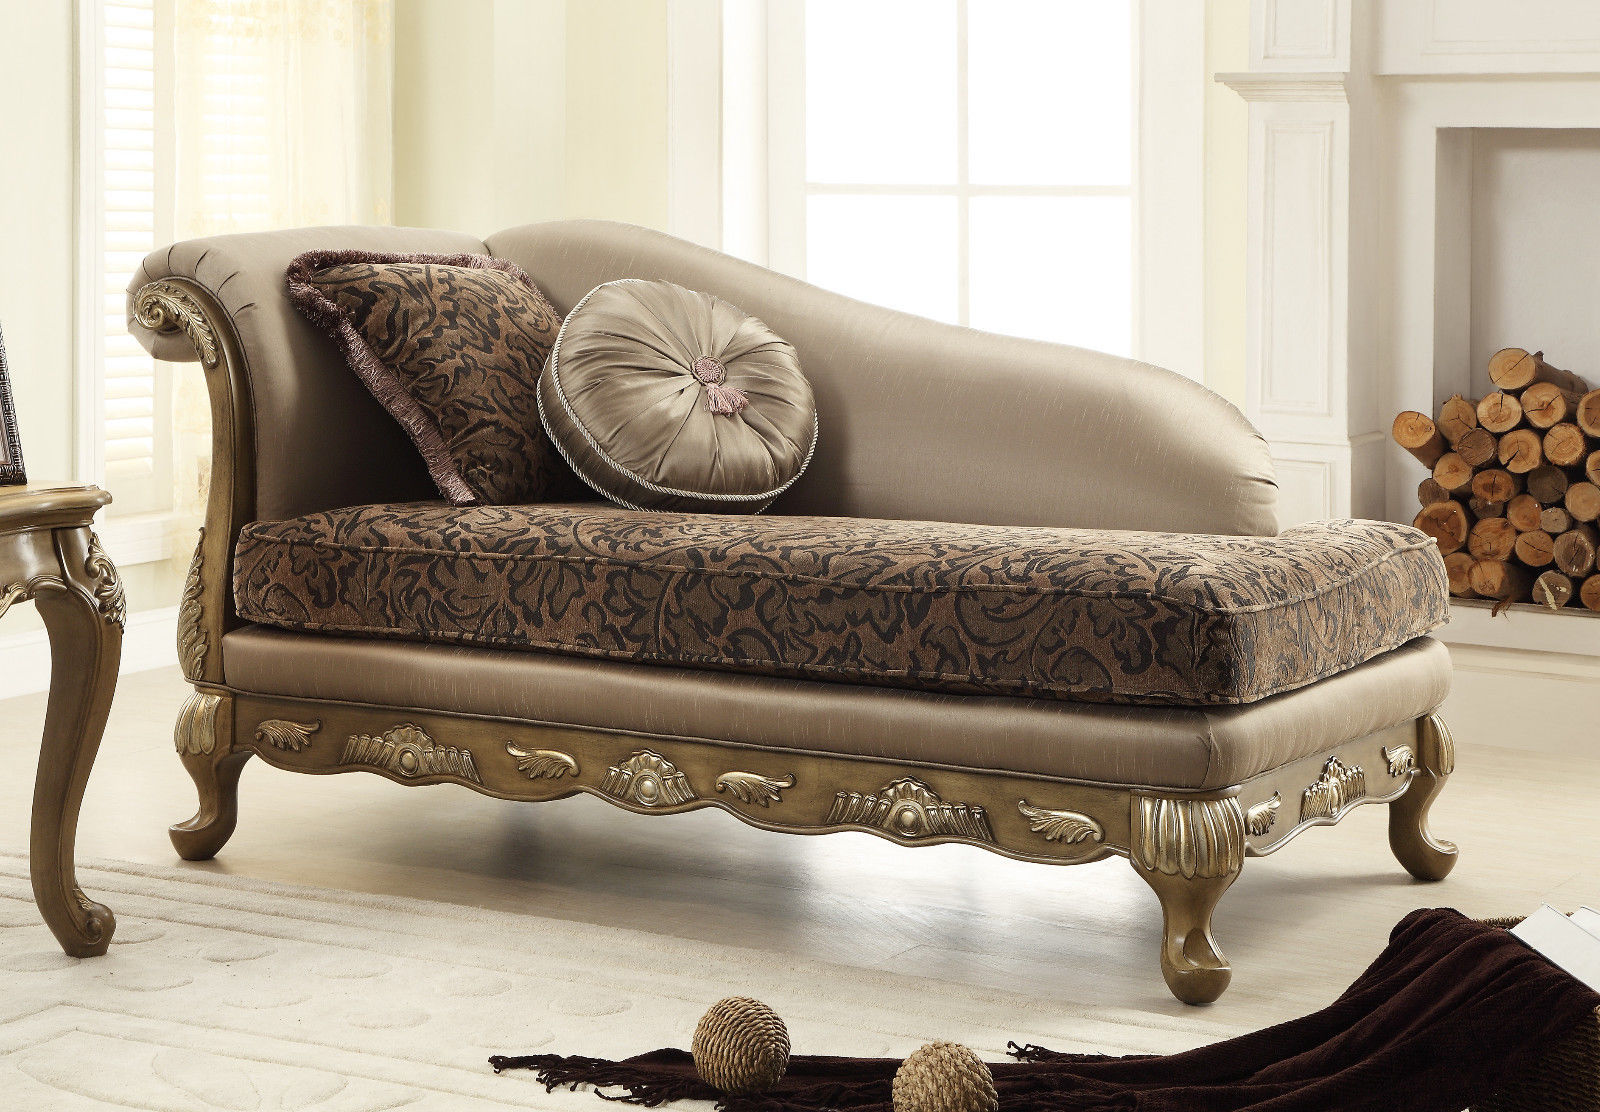 Meridian 606 Palmas Living Room Chaise in Gray Hand Crafted Traditional Style